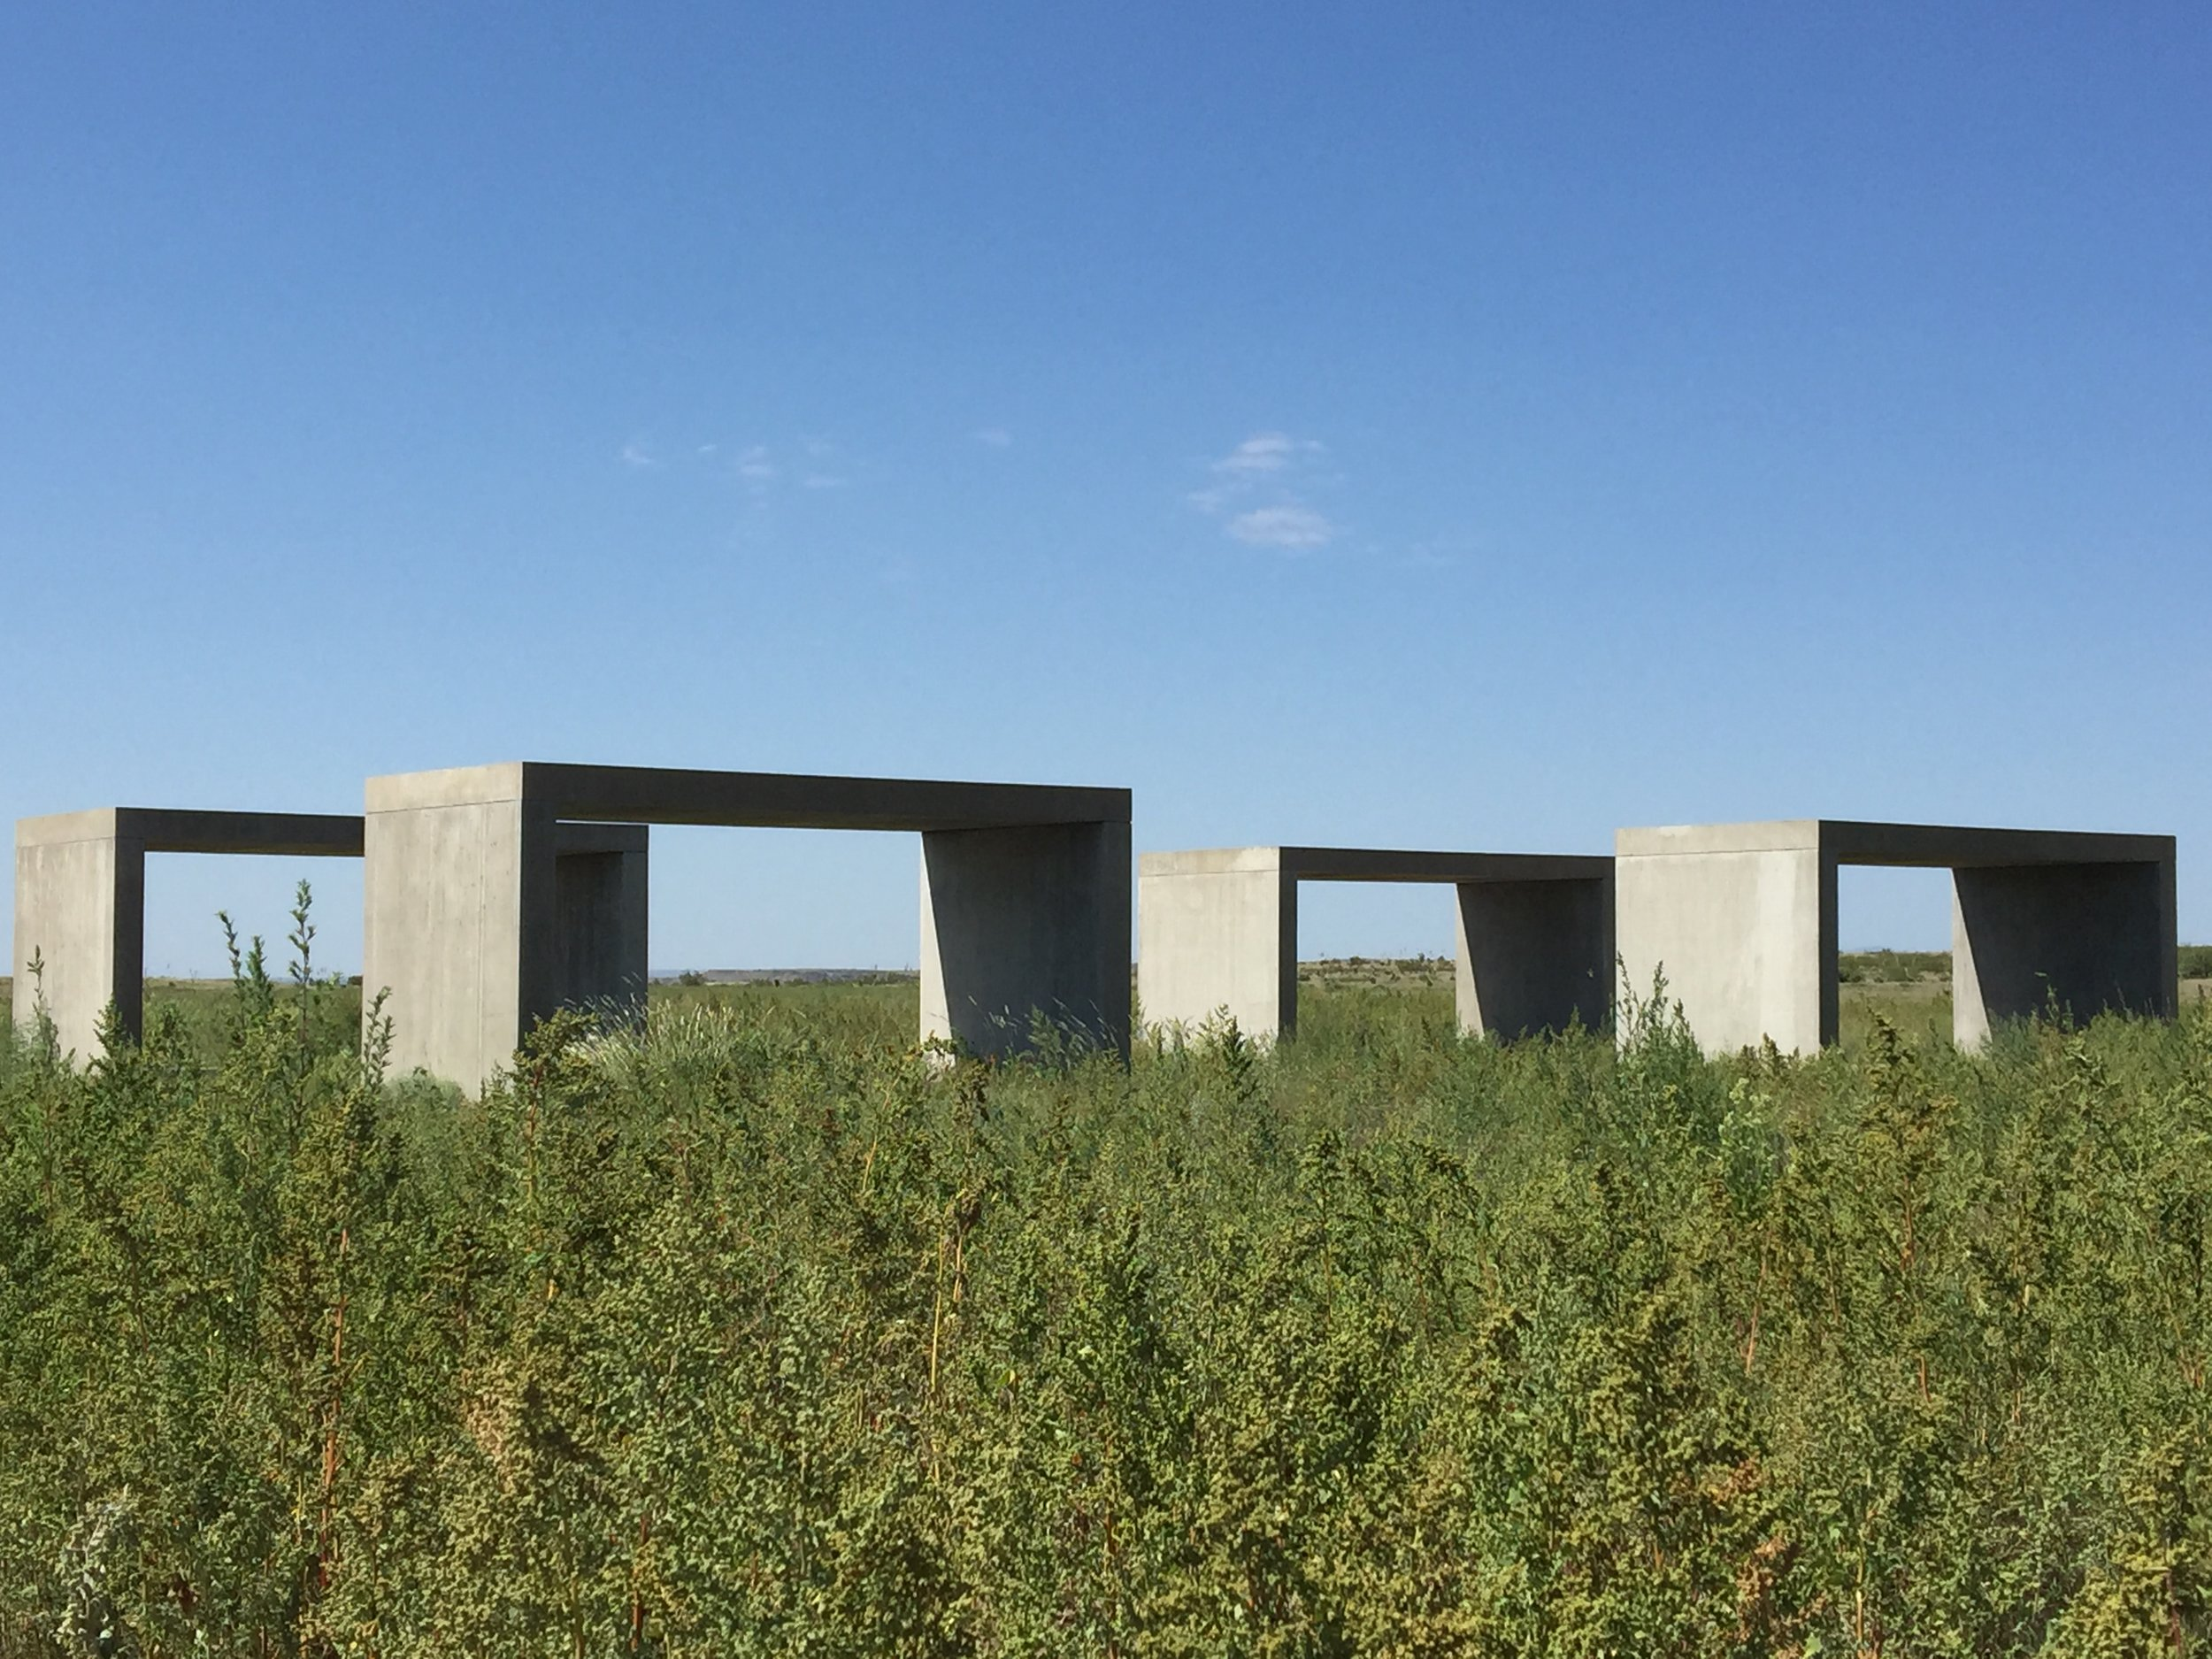 Chinati Foundation, Marfa, TX